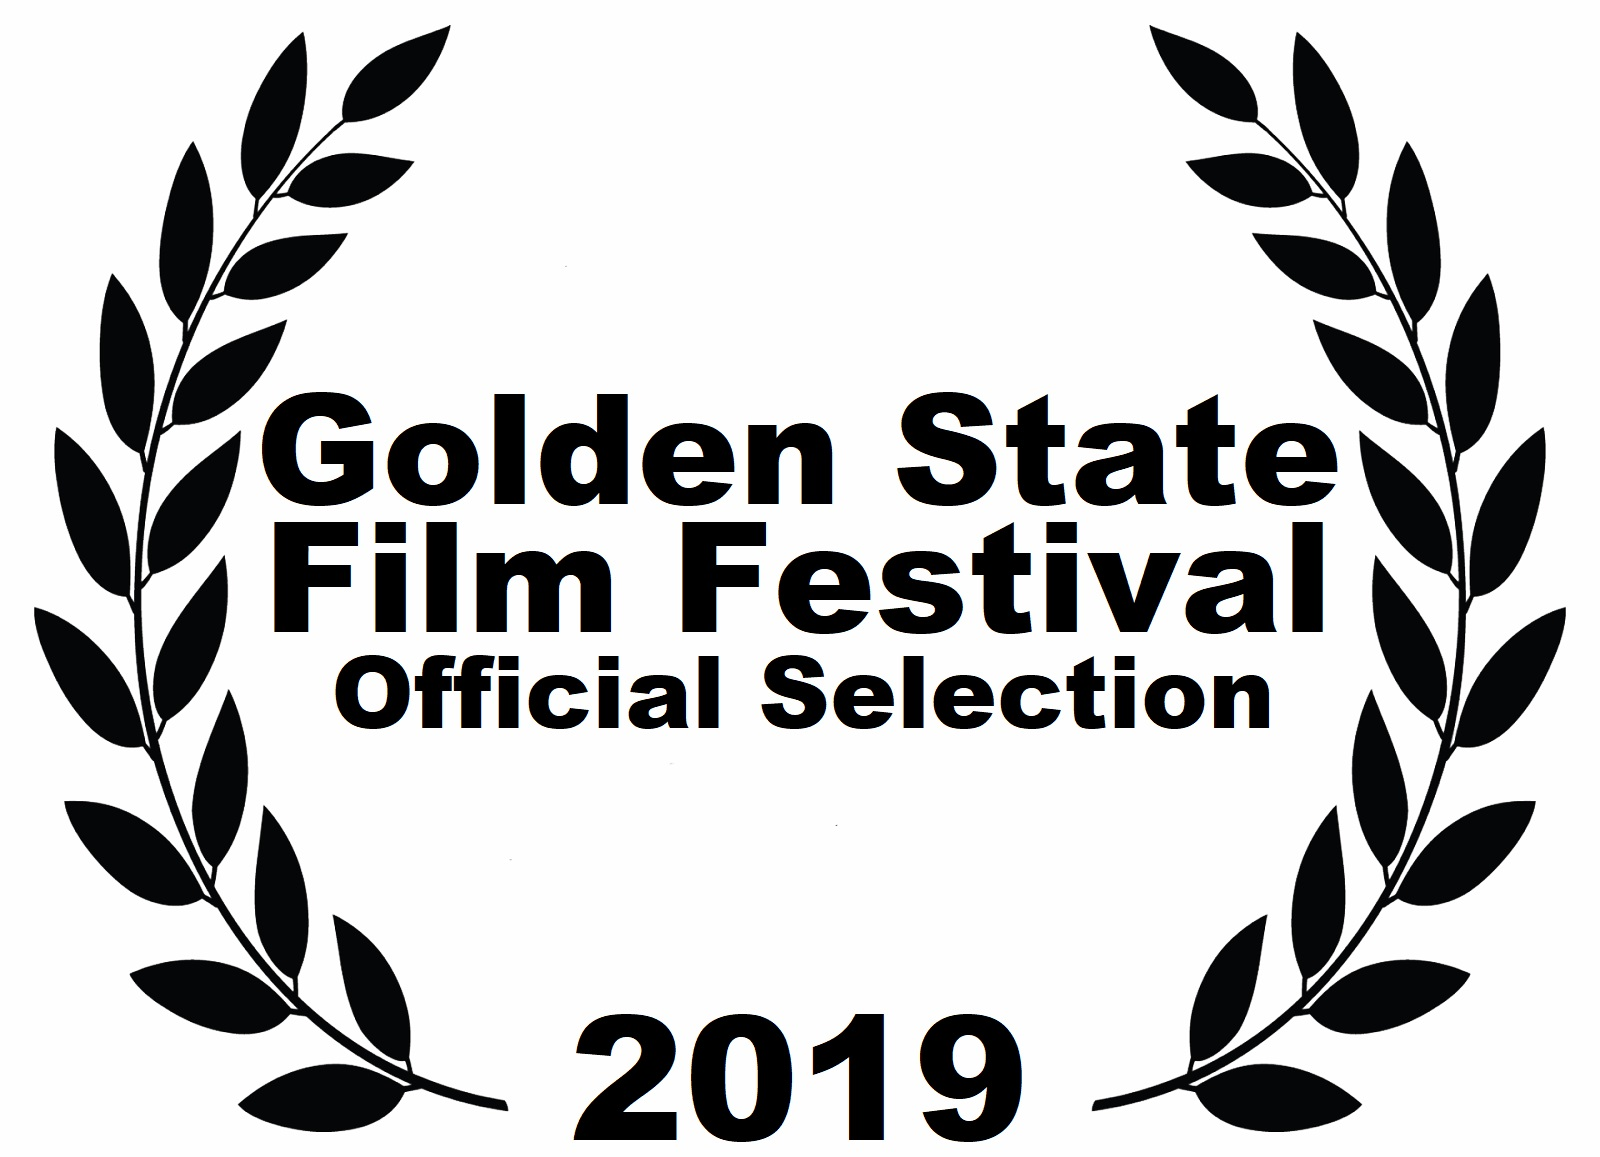 Golden State Film Festival 2019 Laurel (1).jpg